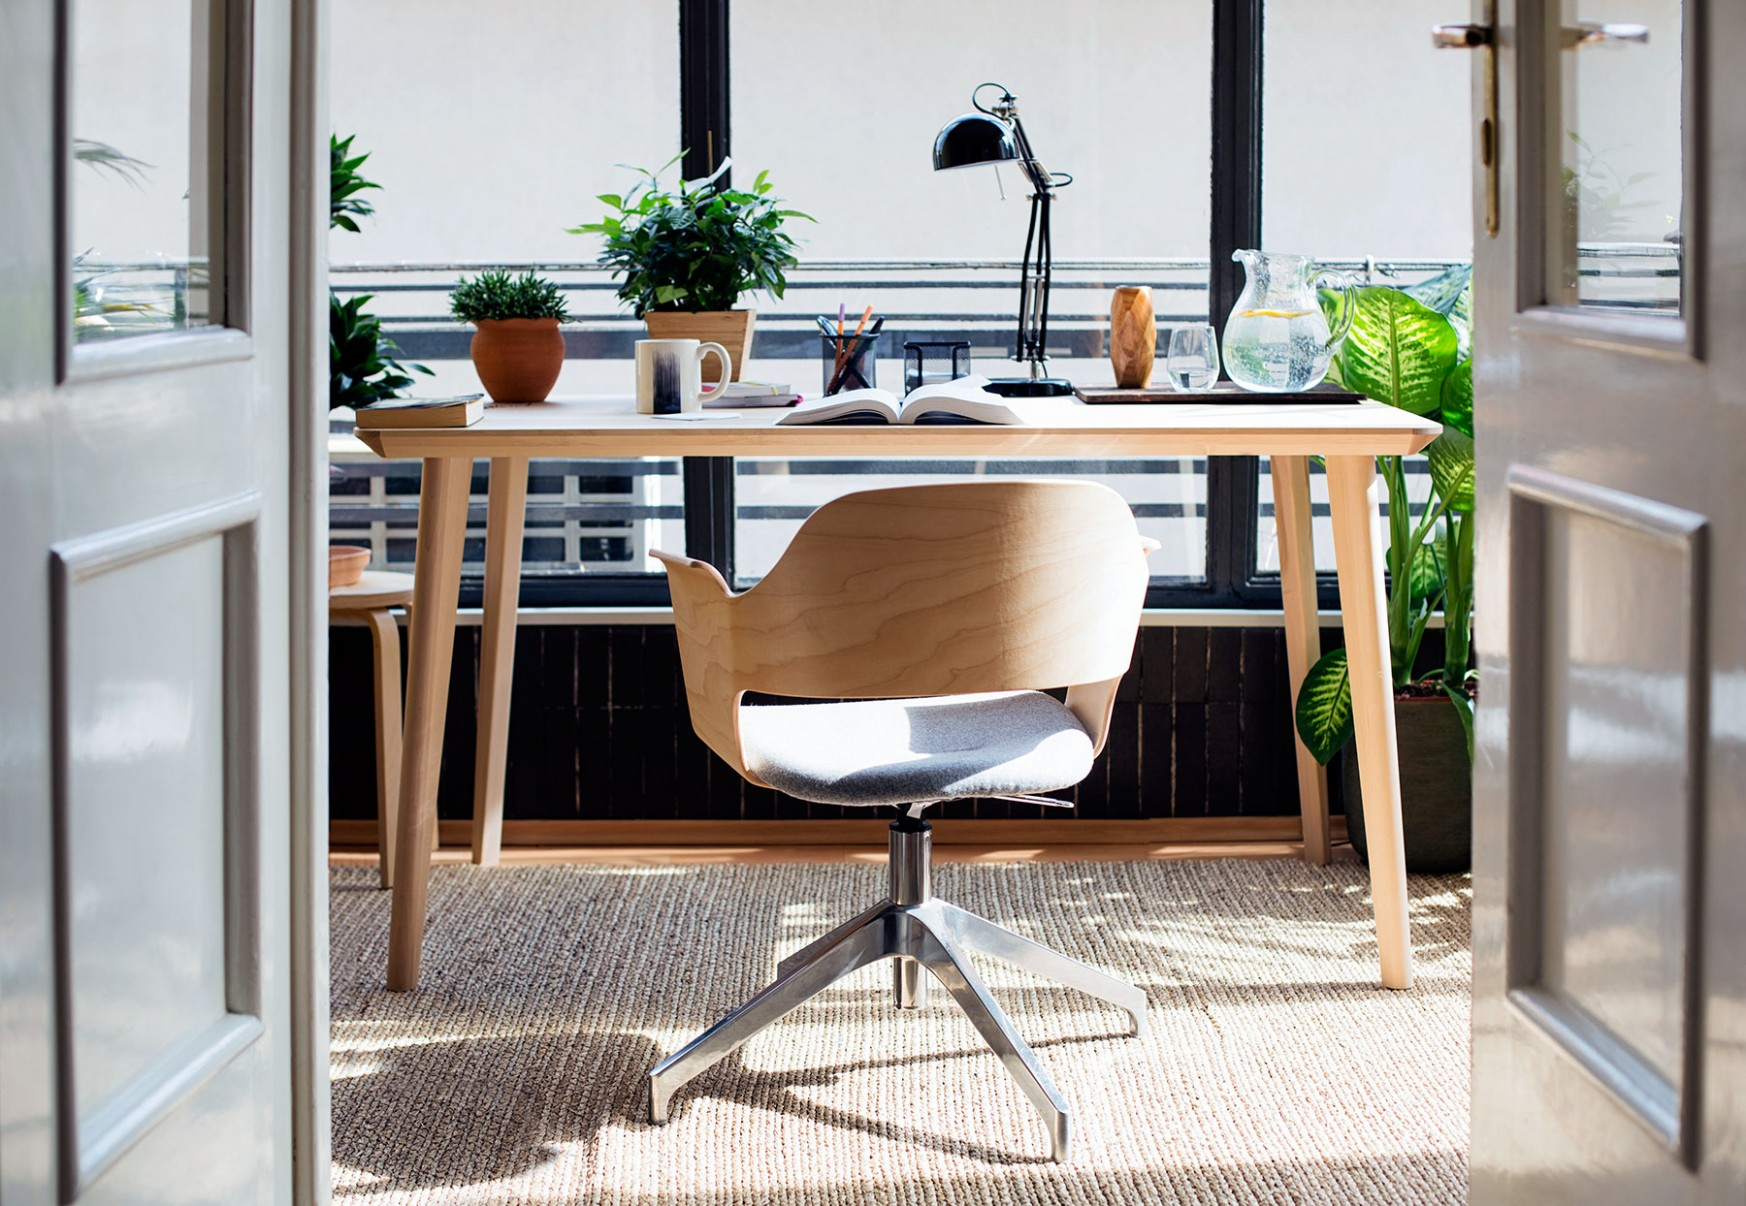 10 Home Office Ideas That Will Make You Want to Work All Day  - Home Office Ideas In Dining Room